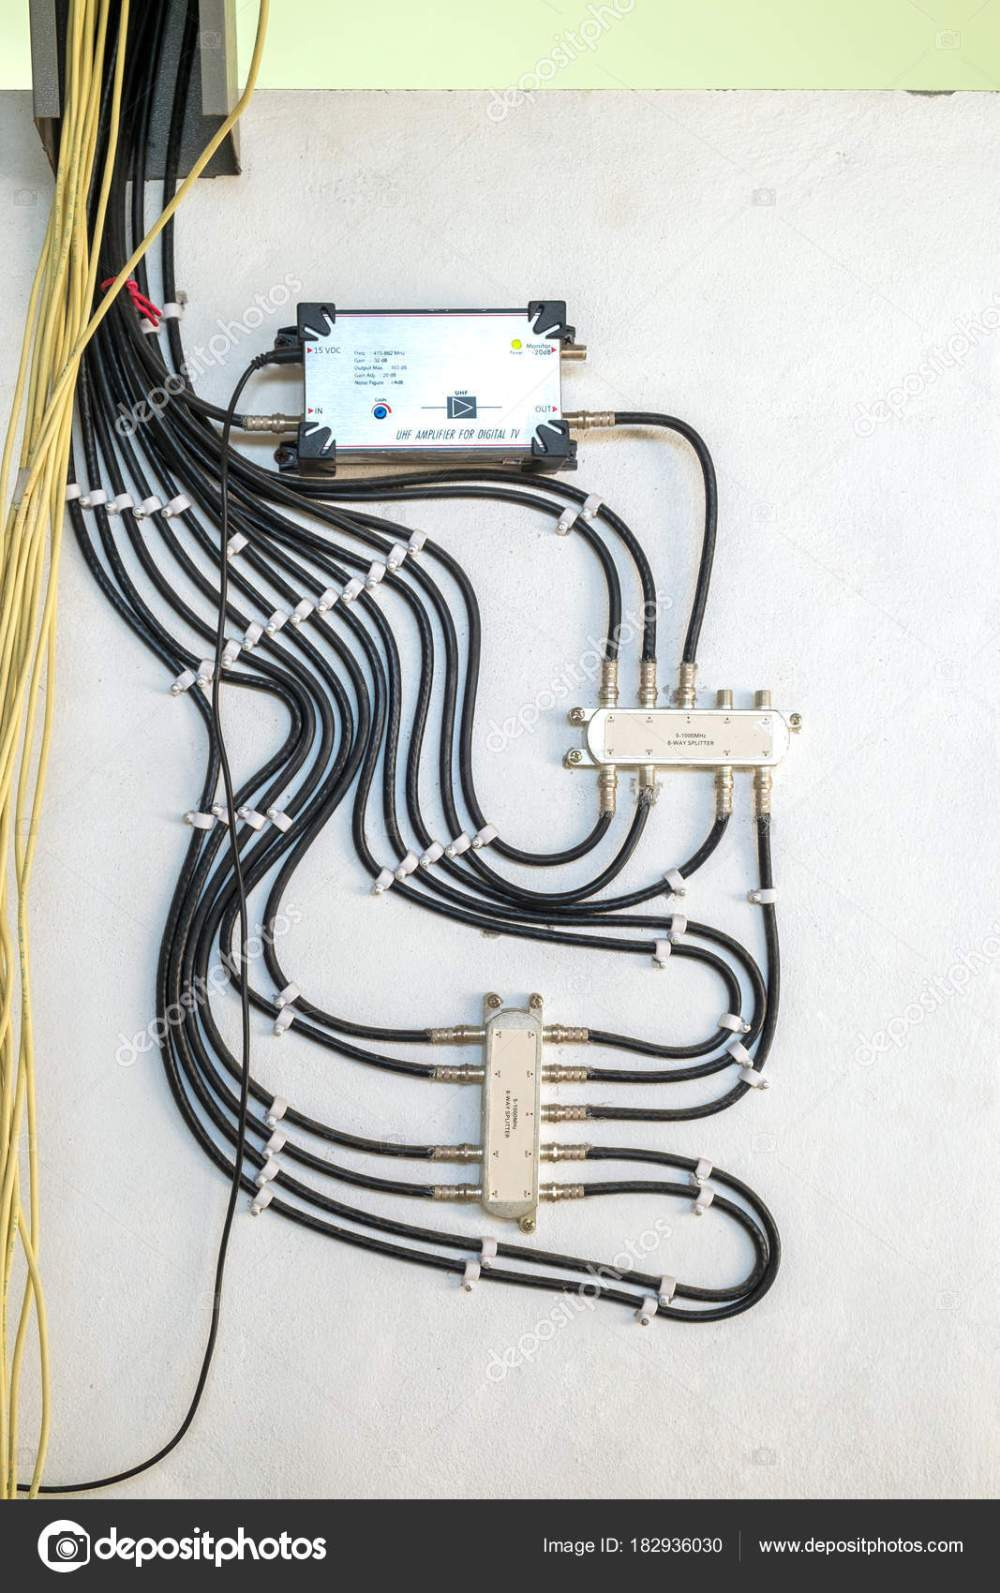 medium resolution of cable television system by wire with cable signal splitter in ap stock photo